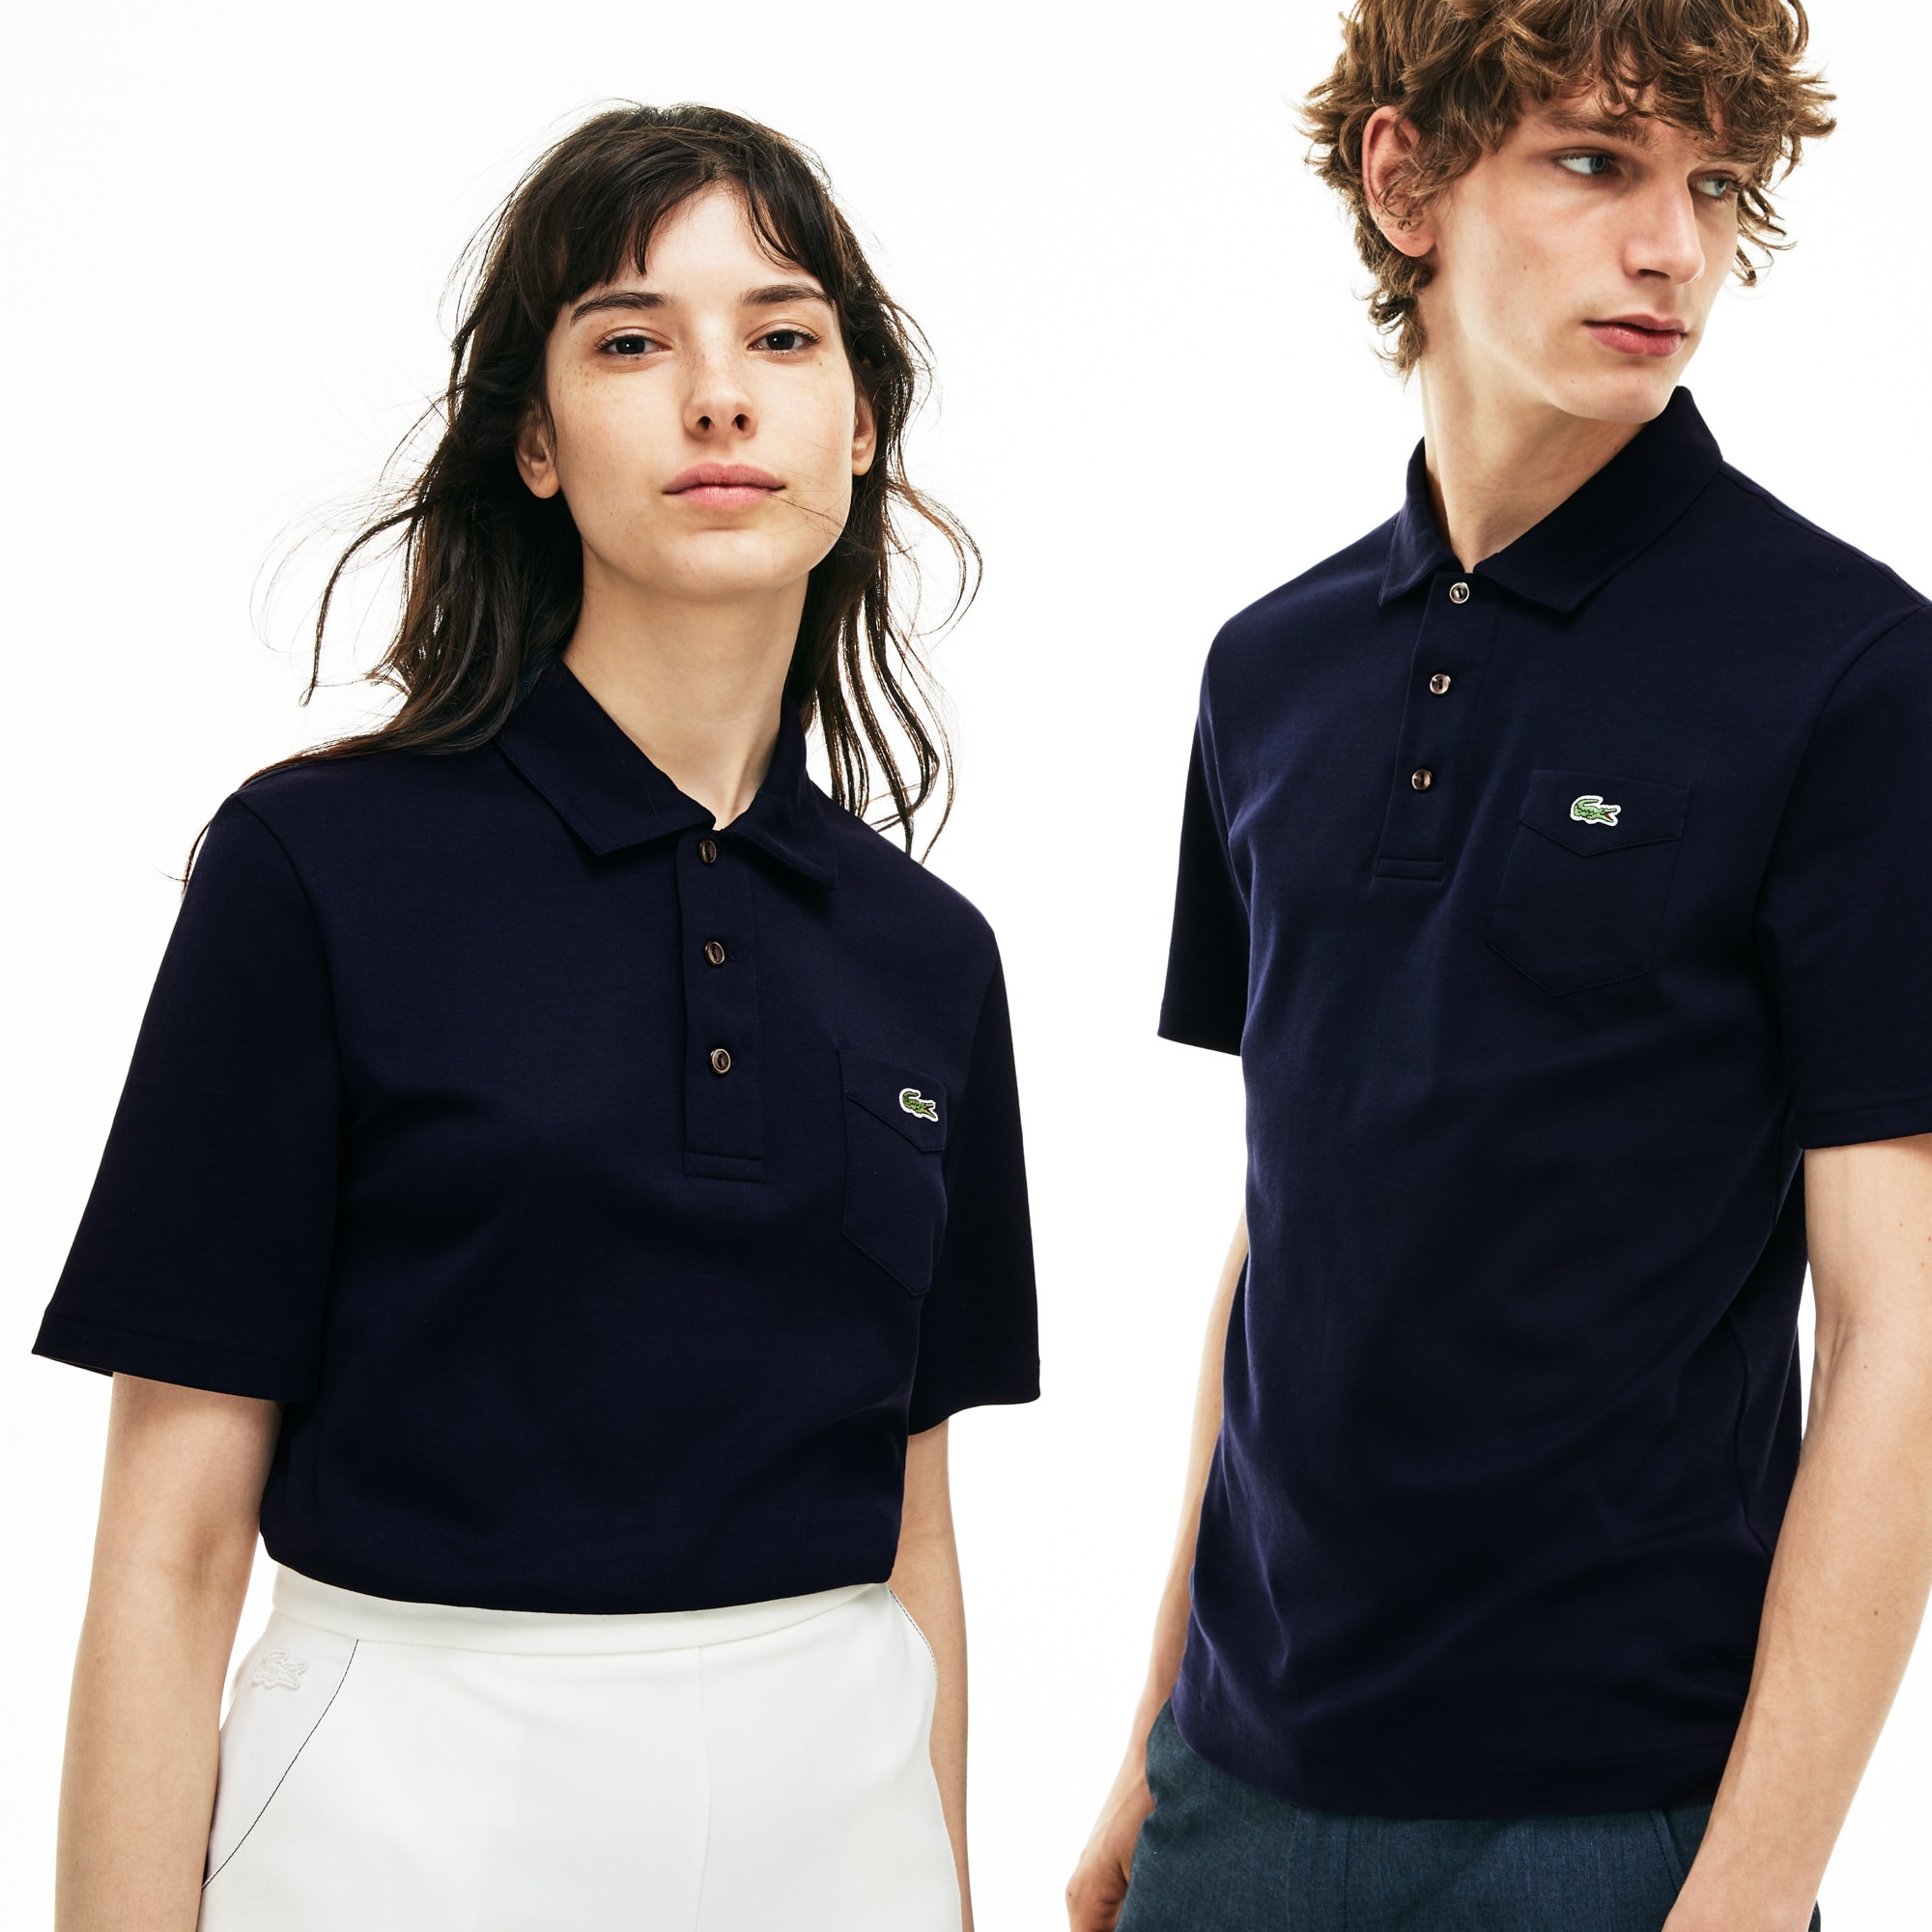 Unisex 85th Anniversary Limited Edition Polo